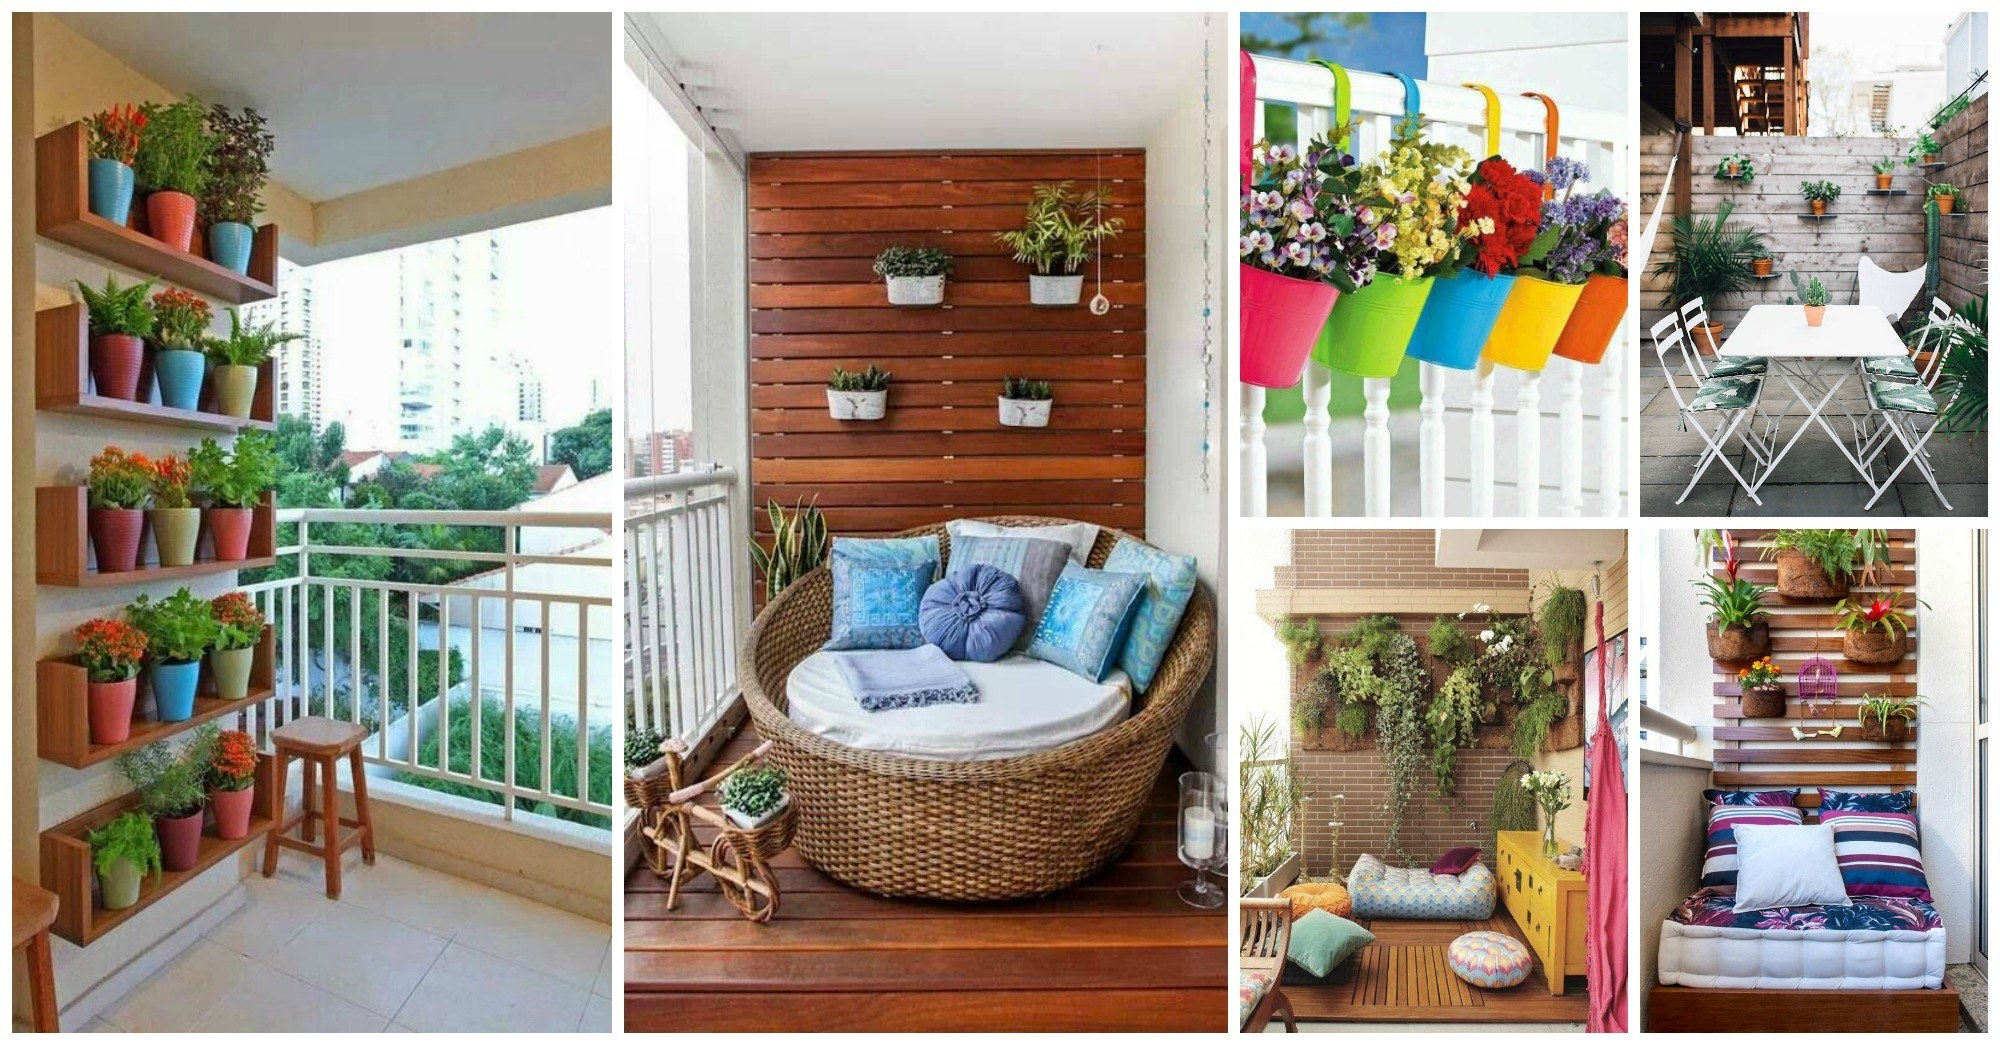 12 Amazing Ways to Make Your Small Balcony More Vivid and Cheerful